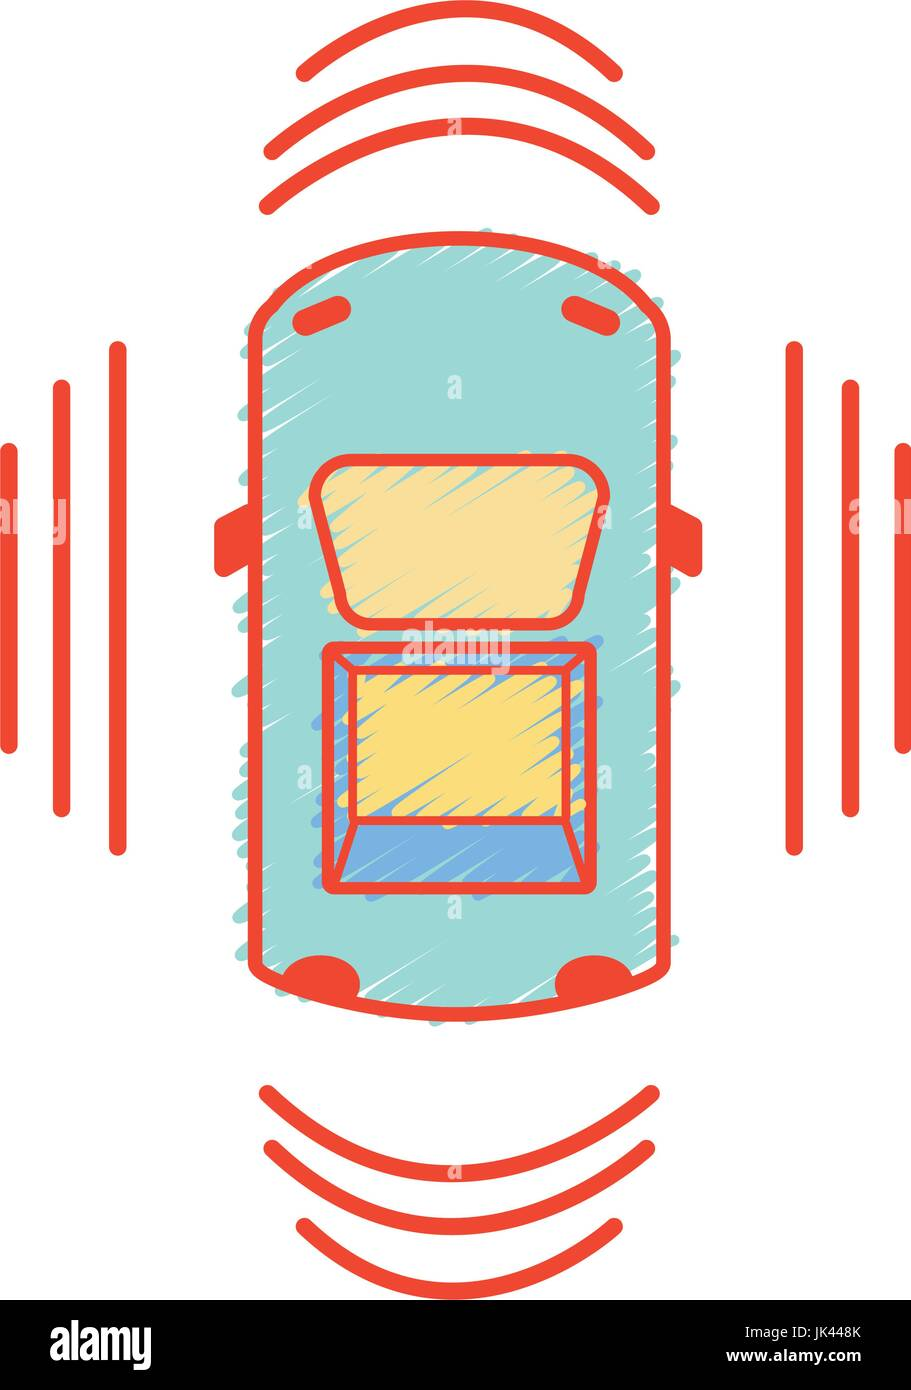 car transportation from above with sunroof stock vector art rh alamy com Hot Rod Flames Clip Art Transmission Clip Art